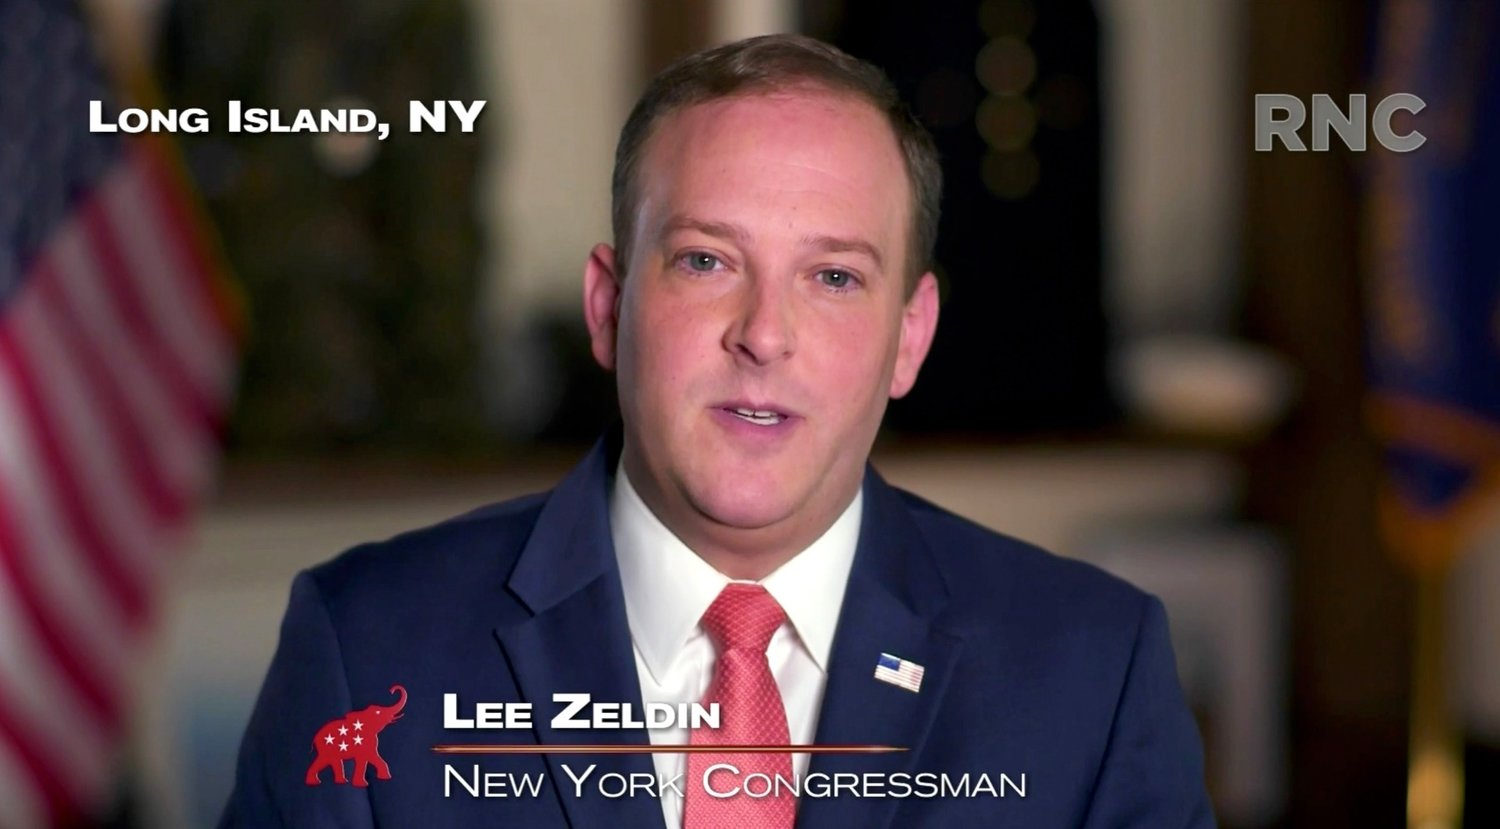 In this screenshot from the RNC's livestream of the 2020 Republican National Convention, Rep. Lee Zeldin of Long Island addresses the virtual convention on August 26.